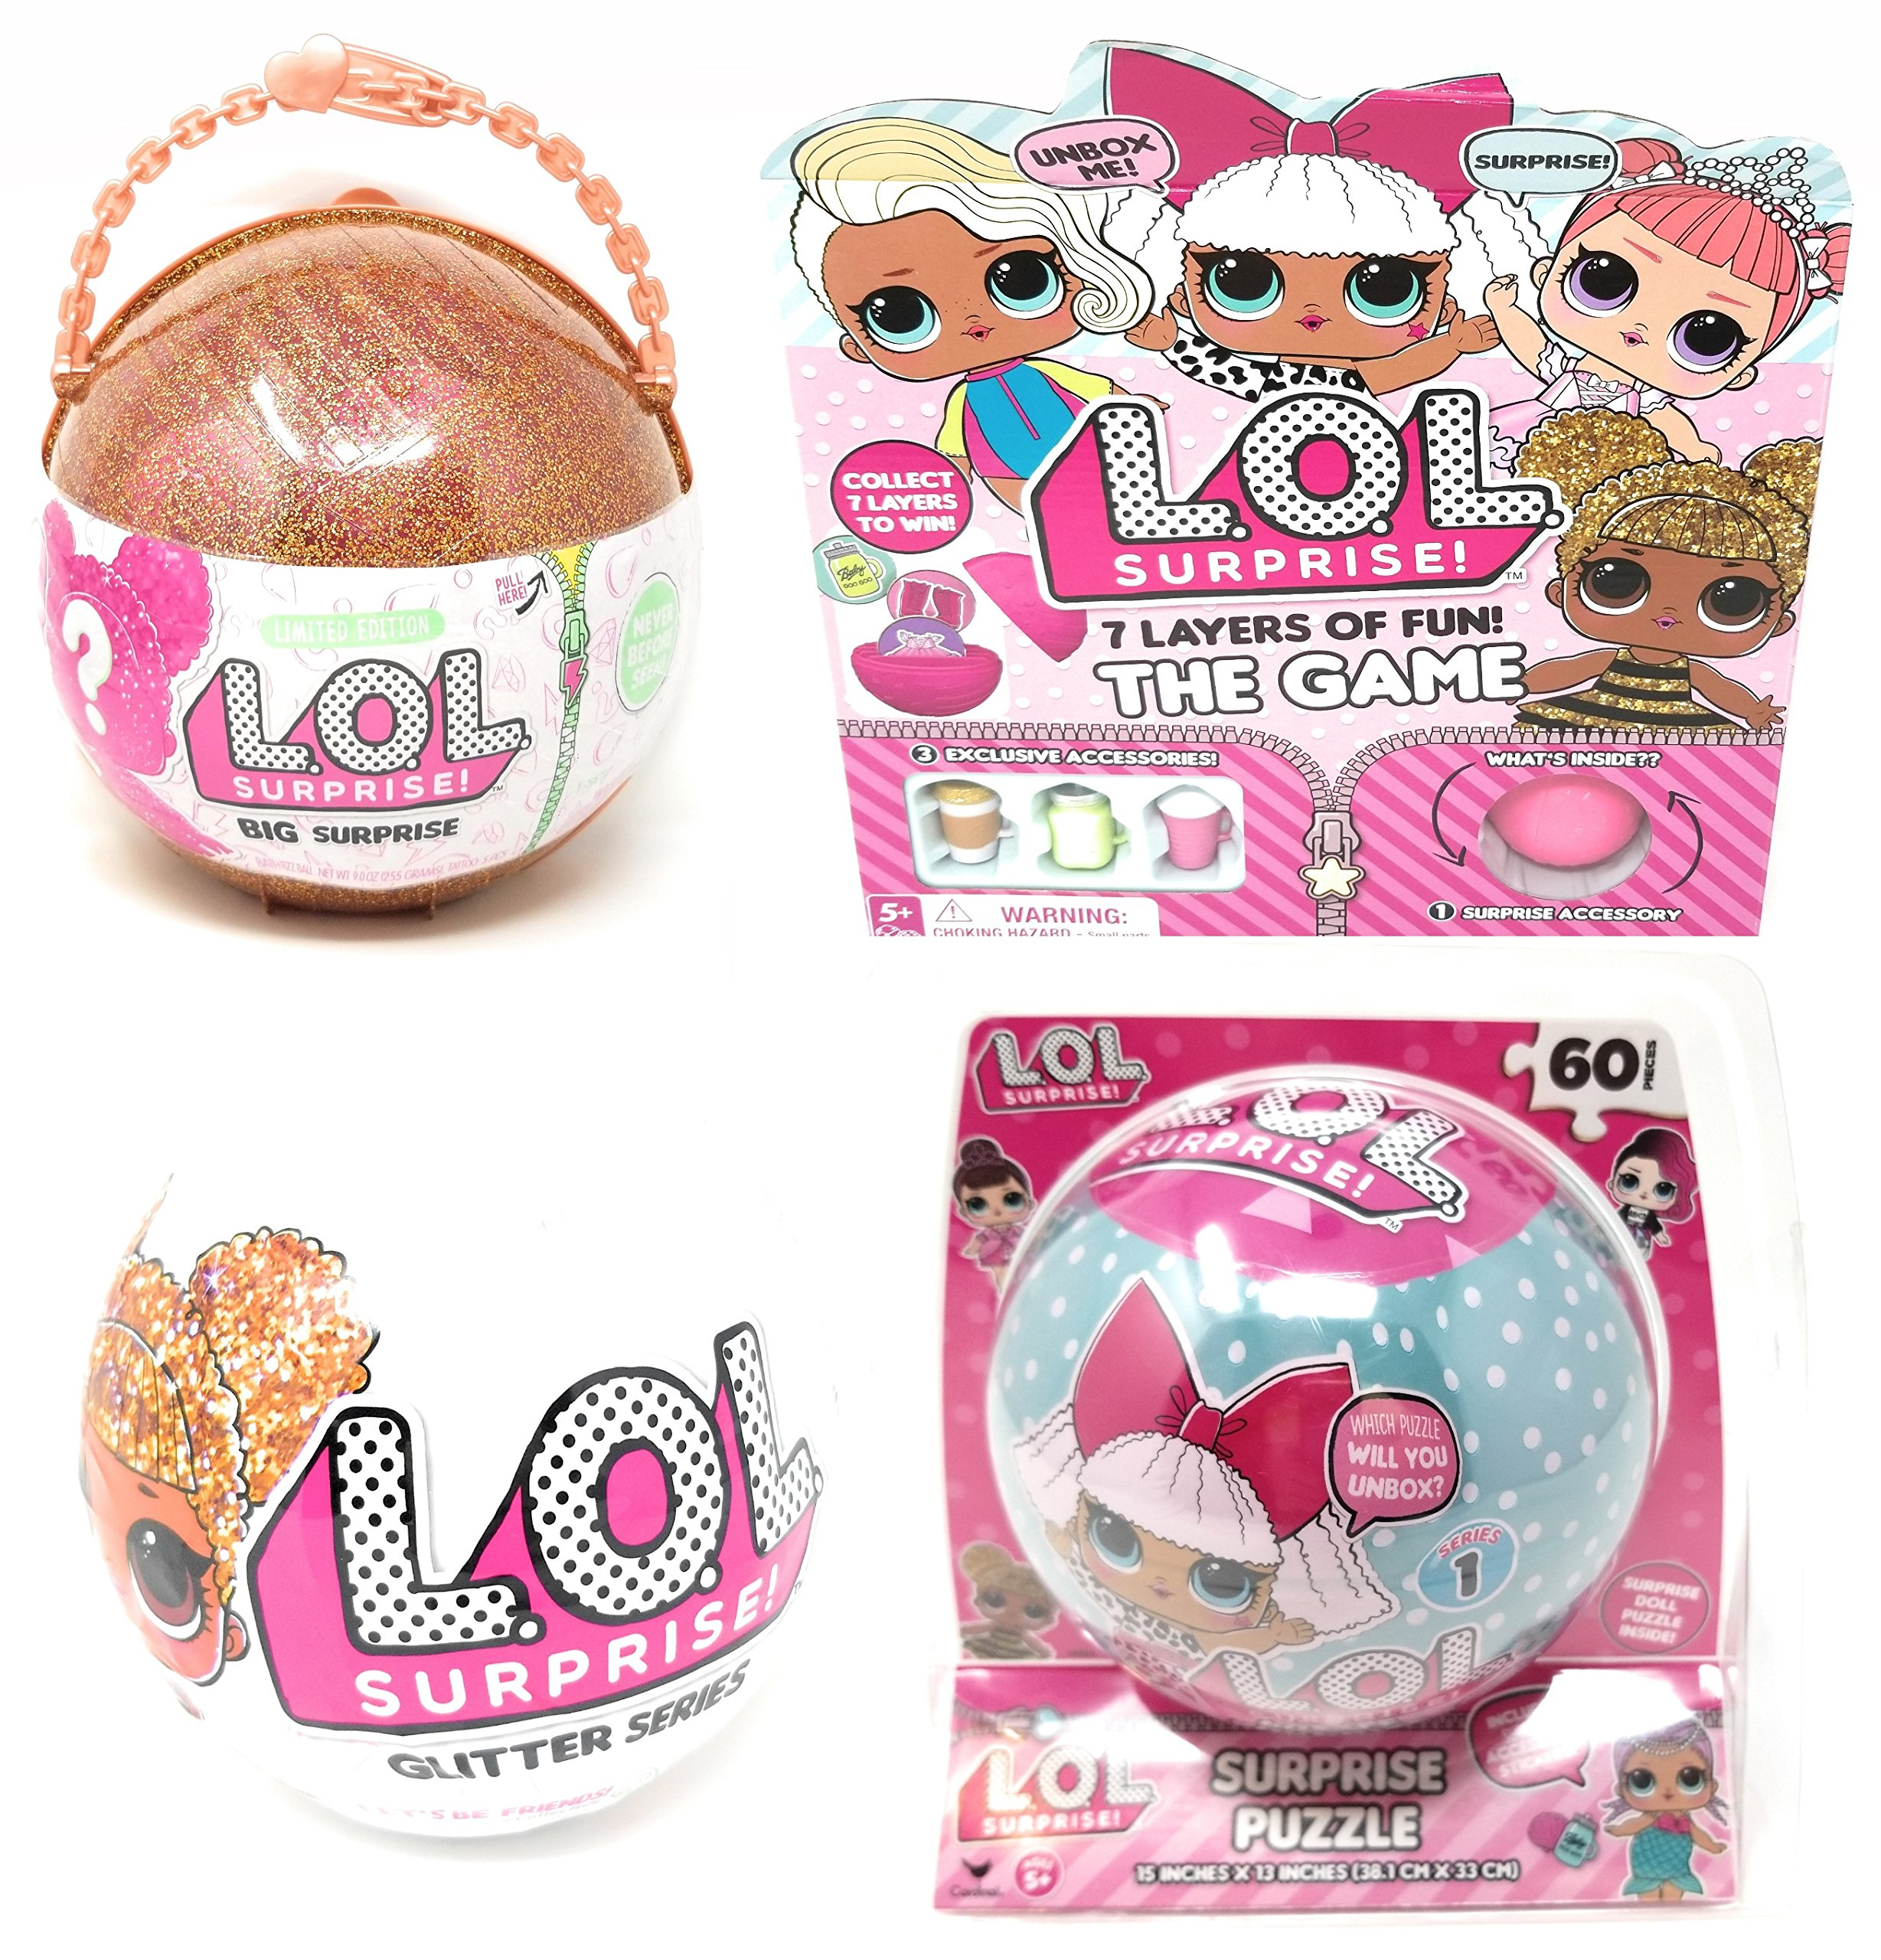 Cardinal Games L.O.L. Surprise! 7 Layers of Fun The Game, Glitter Ball and Puzzle Bundle